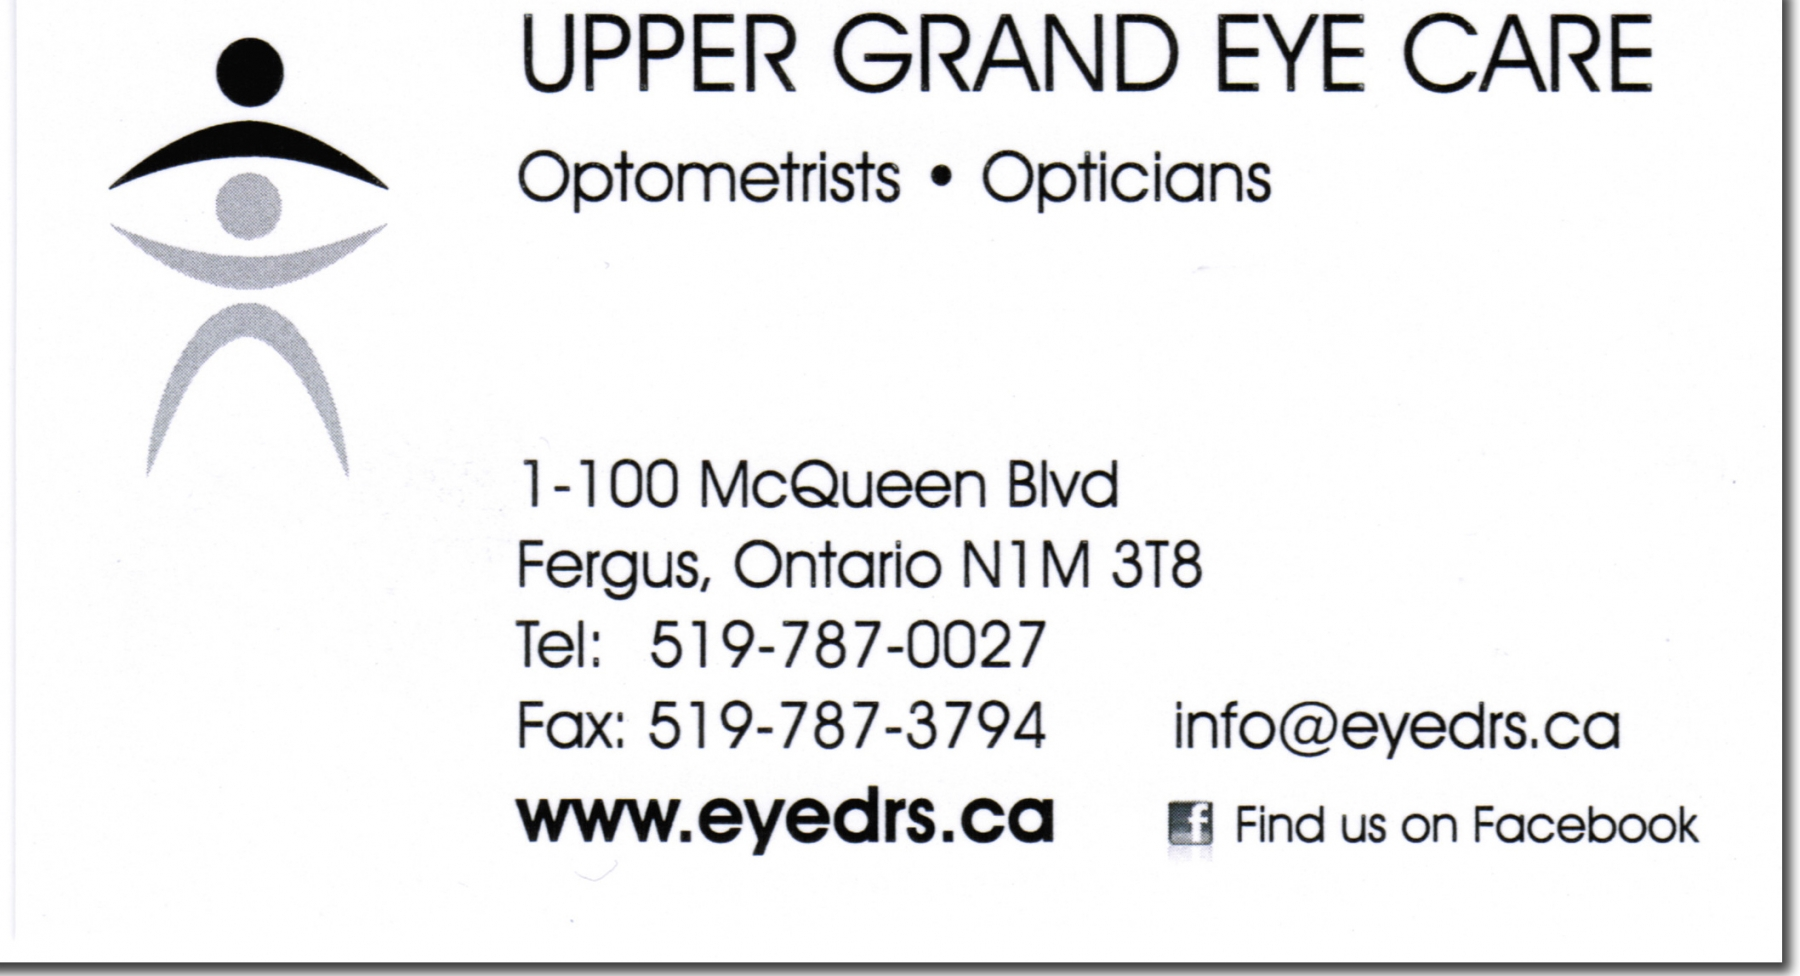 Upper Grand Eye Care